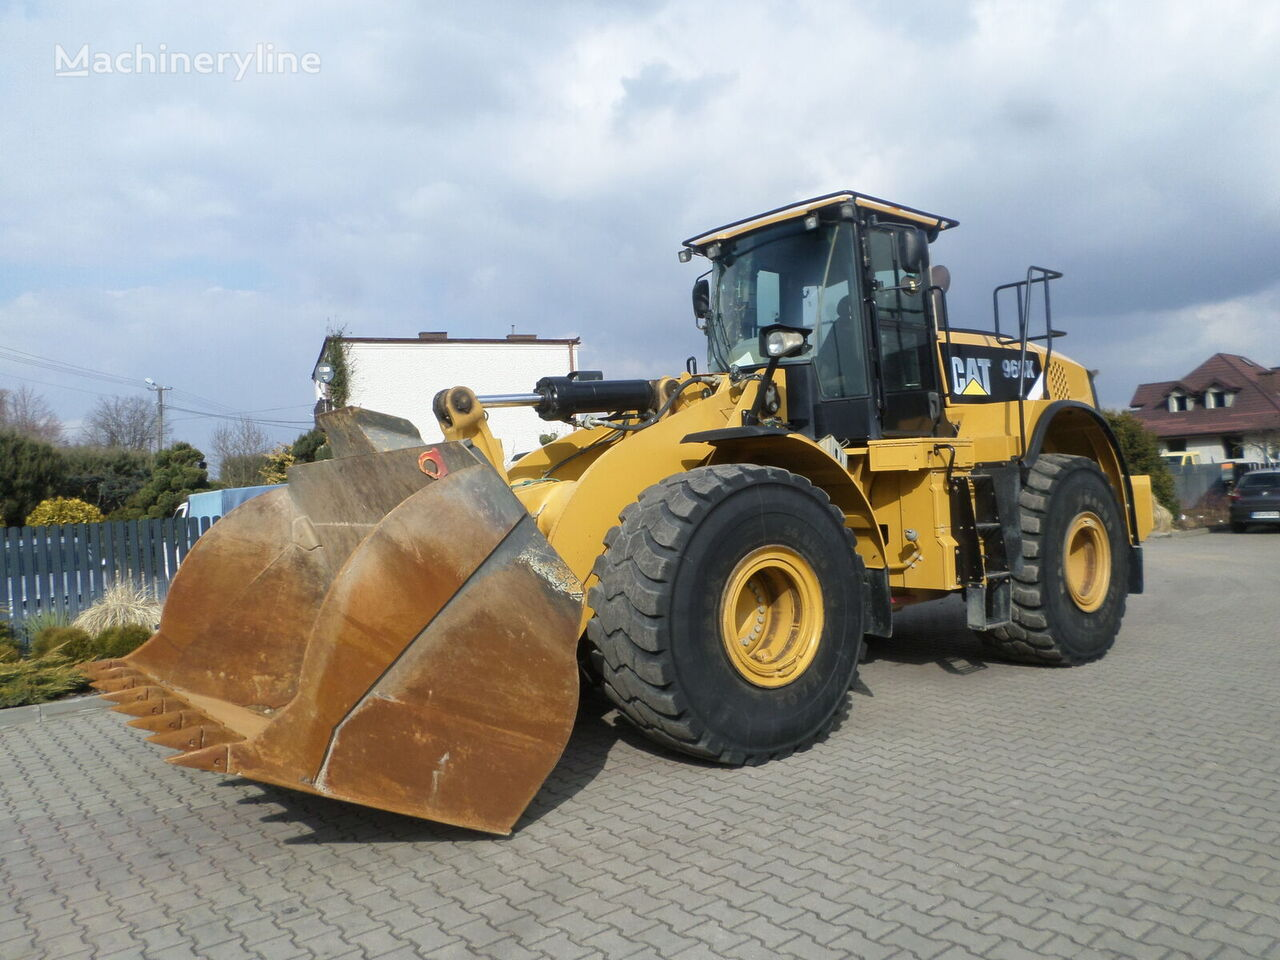 CATERPILLAR 966K wheel loader